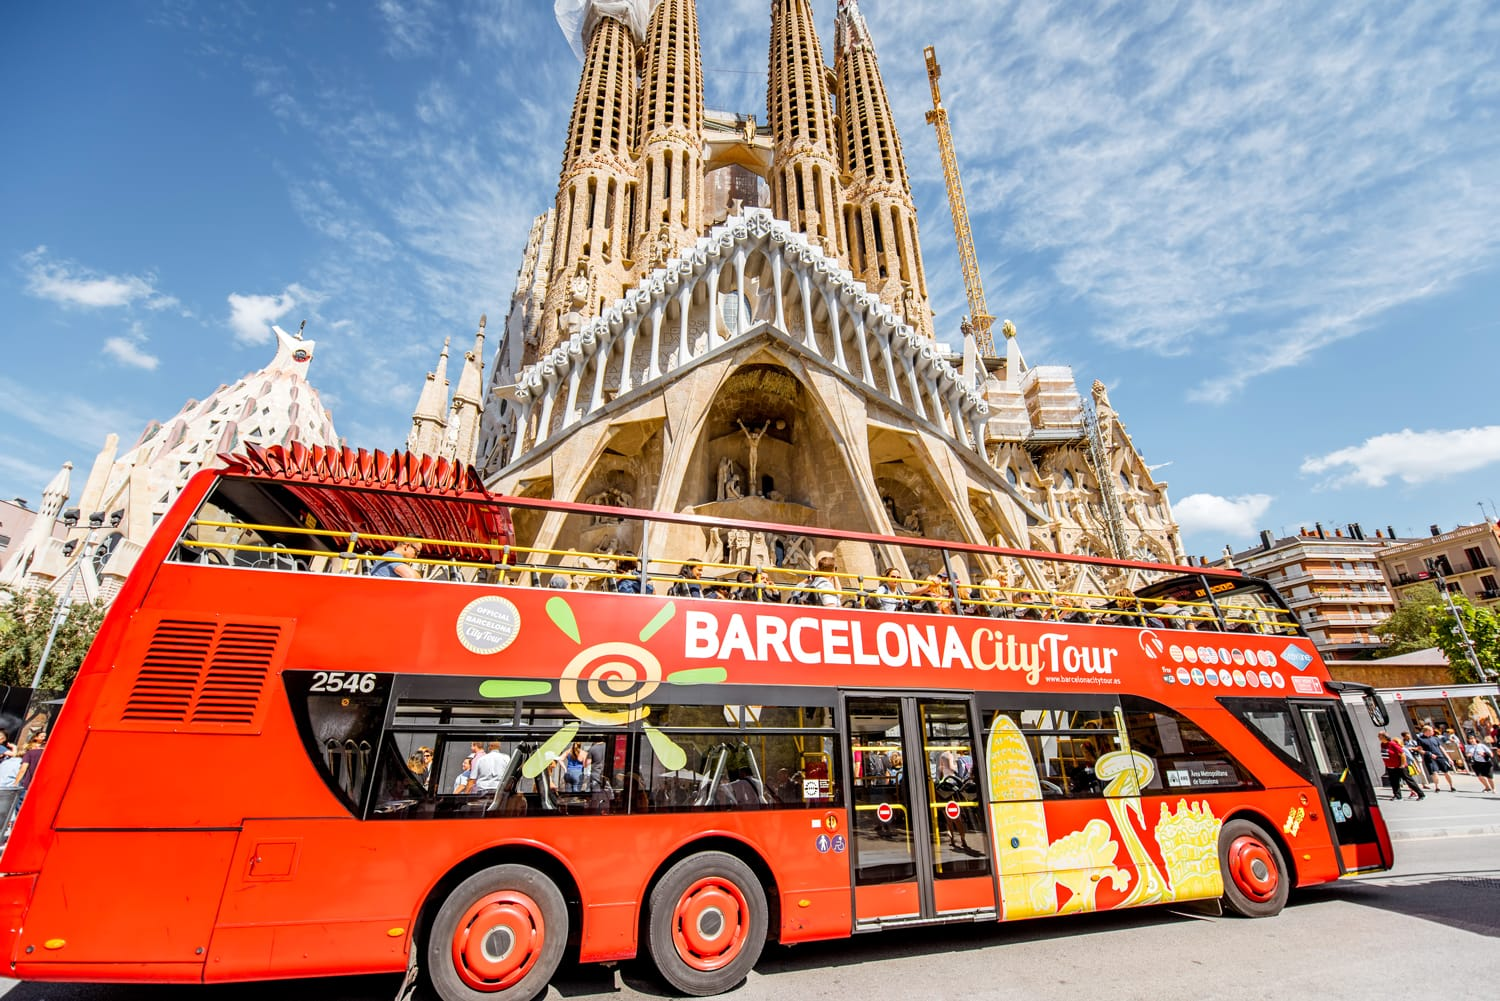 Tourist bus near the famous Sagrada Familia roman catholic church in Barcelona, designed by catalan architect Antoni Gaudi